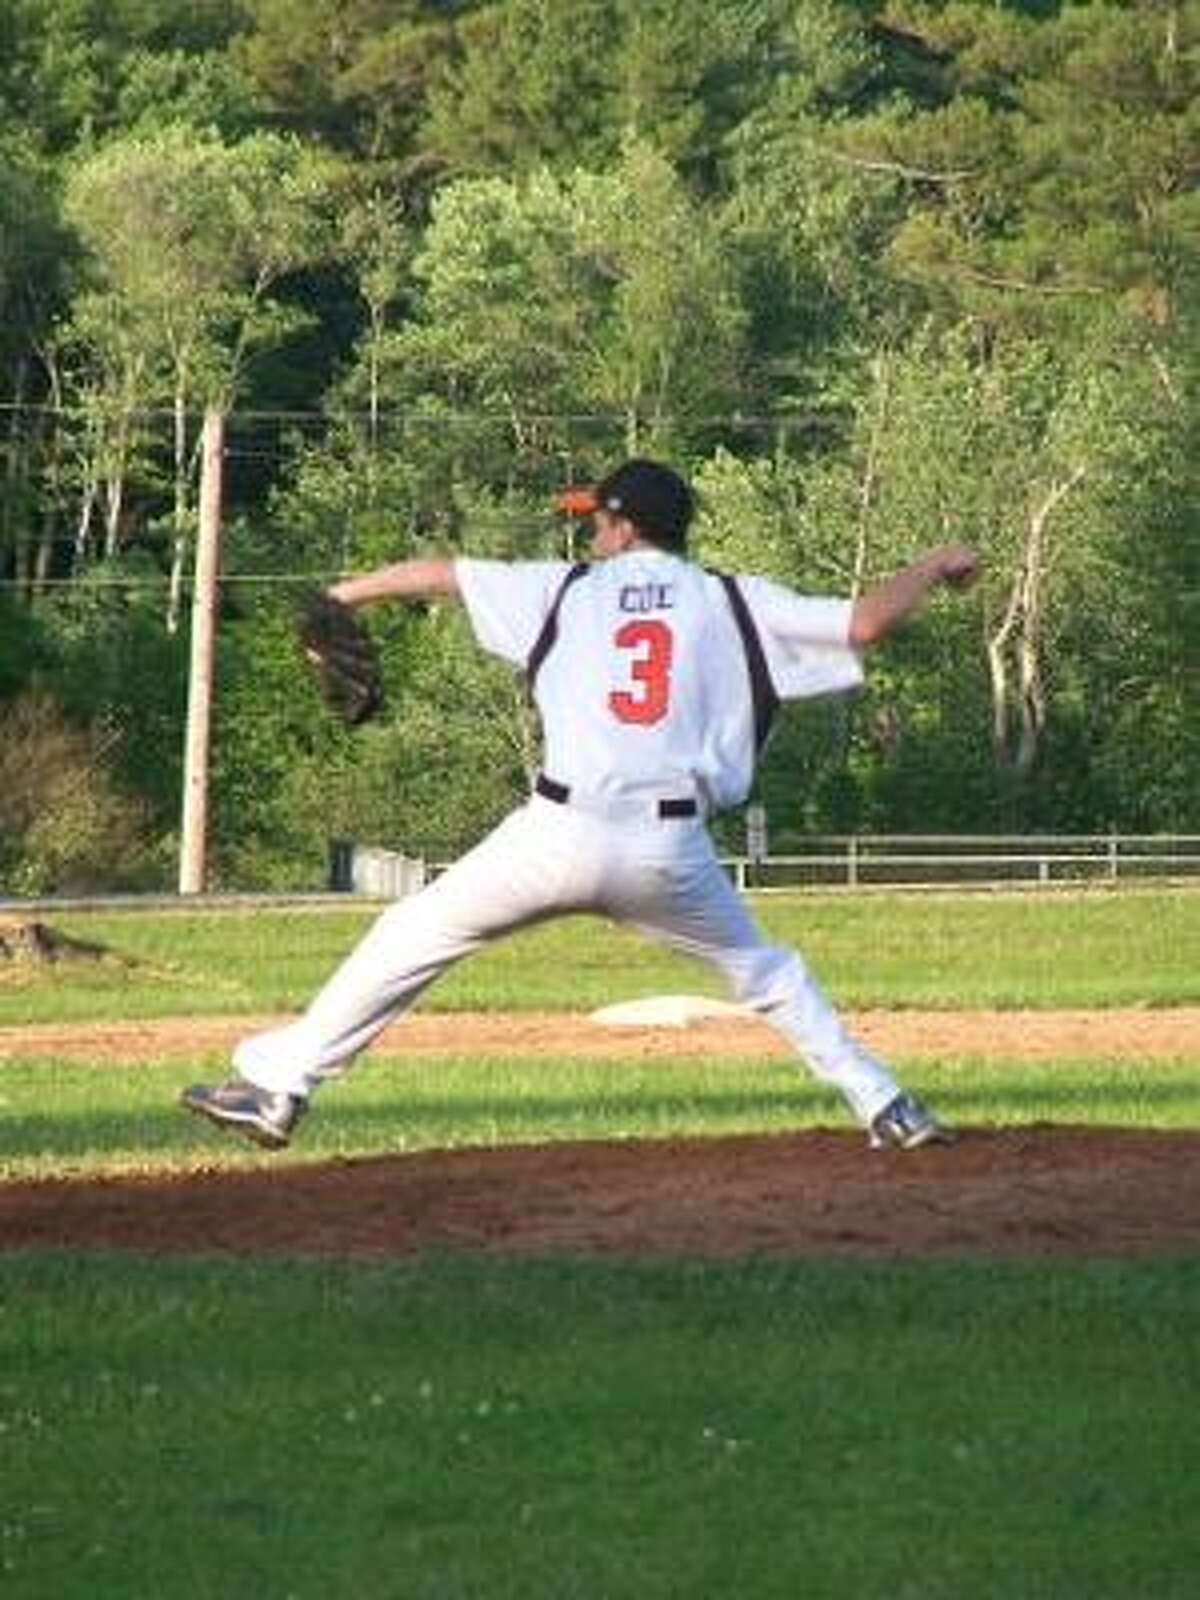 PETER WALLACE/Register Citizen NWCT Orioles starter Brandon Coe throws a pitch during Monday evening's Connie Mack game against Litchfield at Litchfield High School. The Orioles won 6-4.